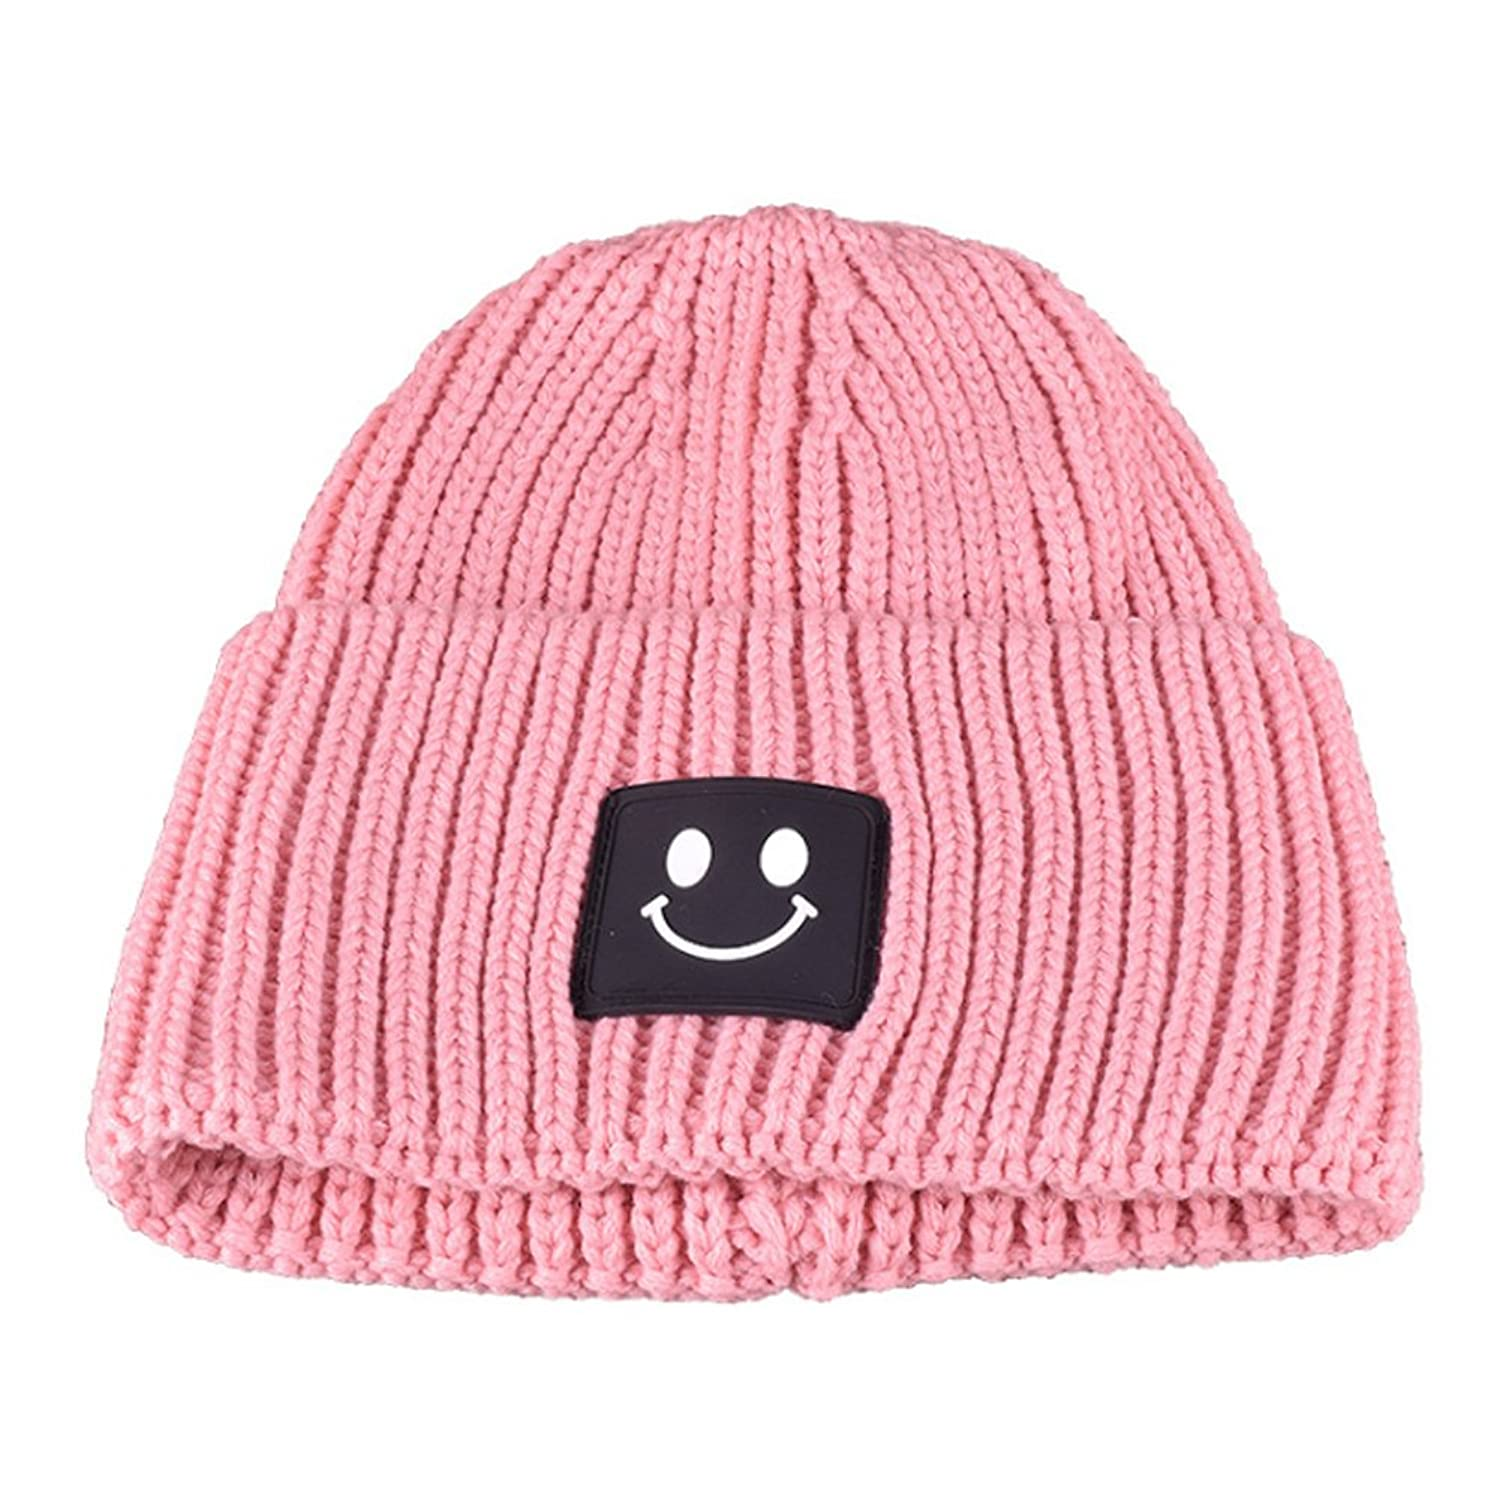 Sitong women 's fashion leisure solid color smiling face wool caps